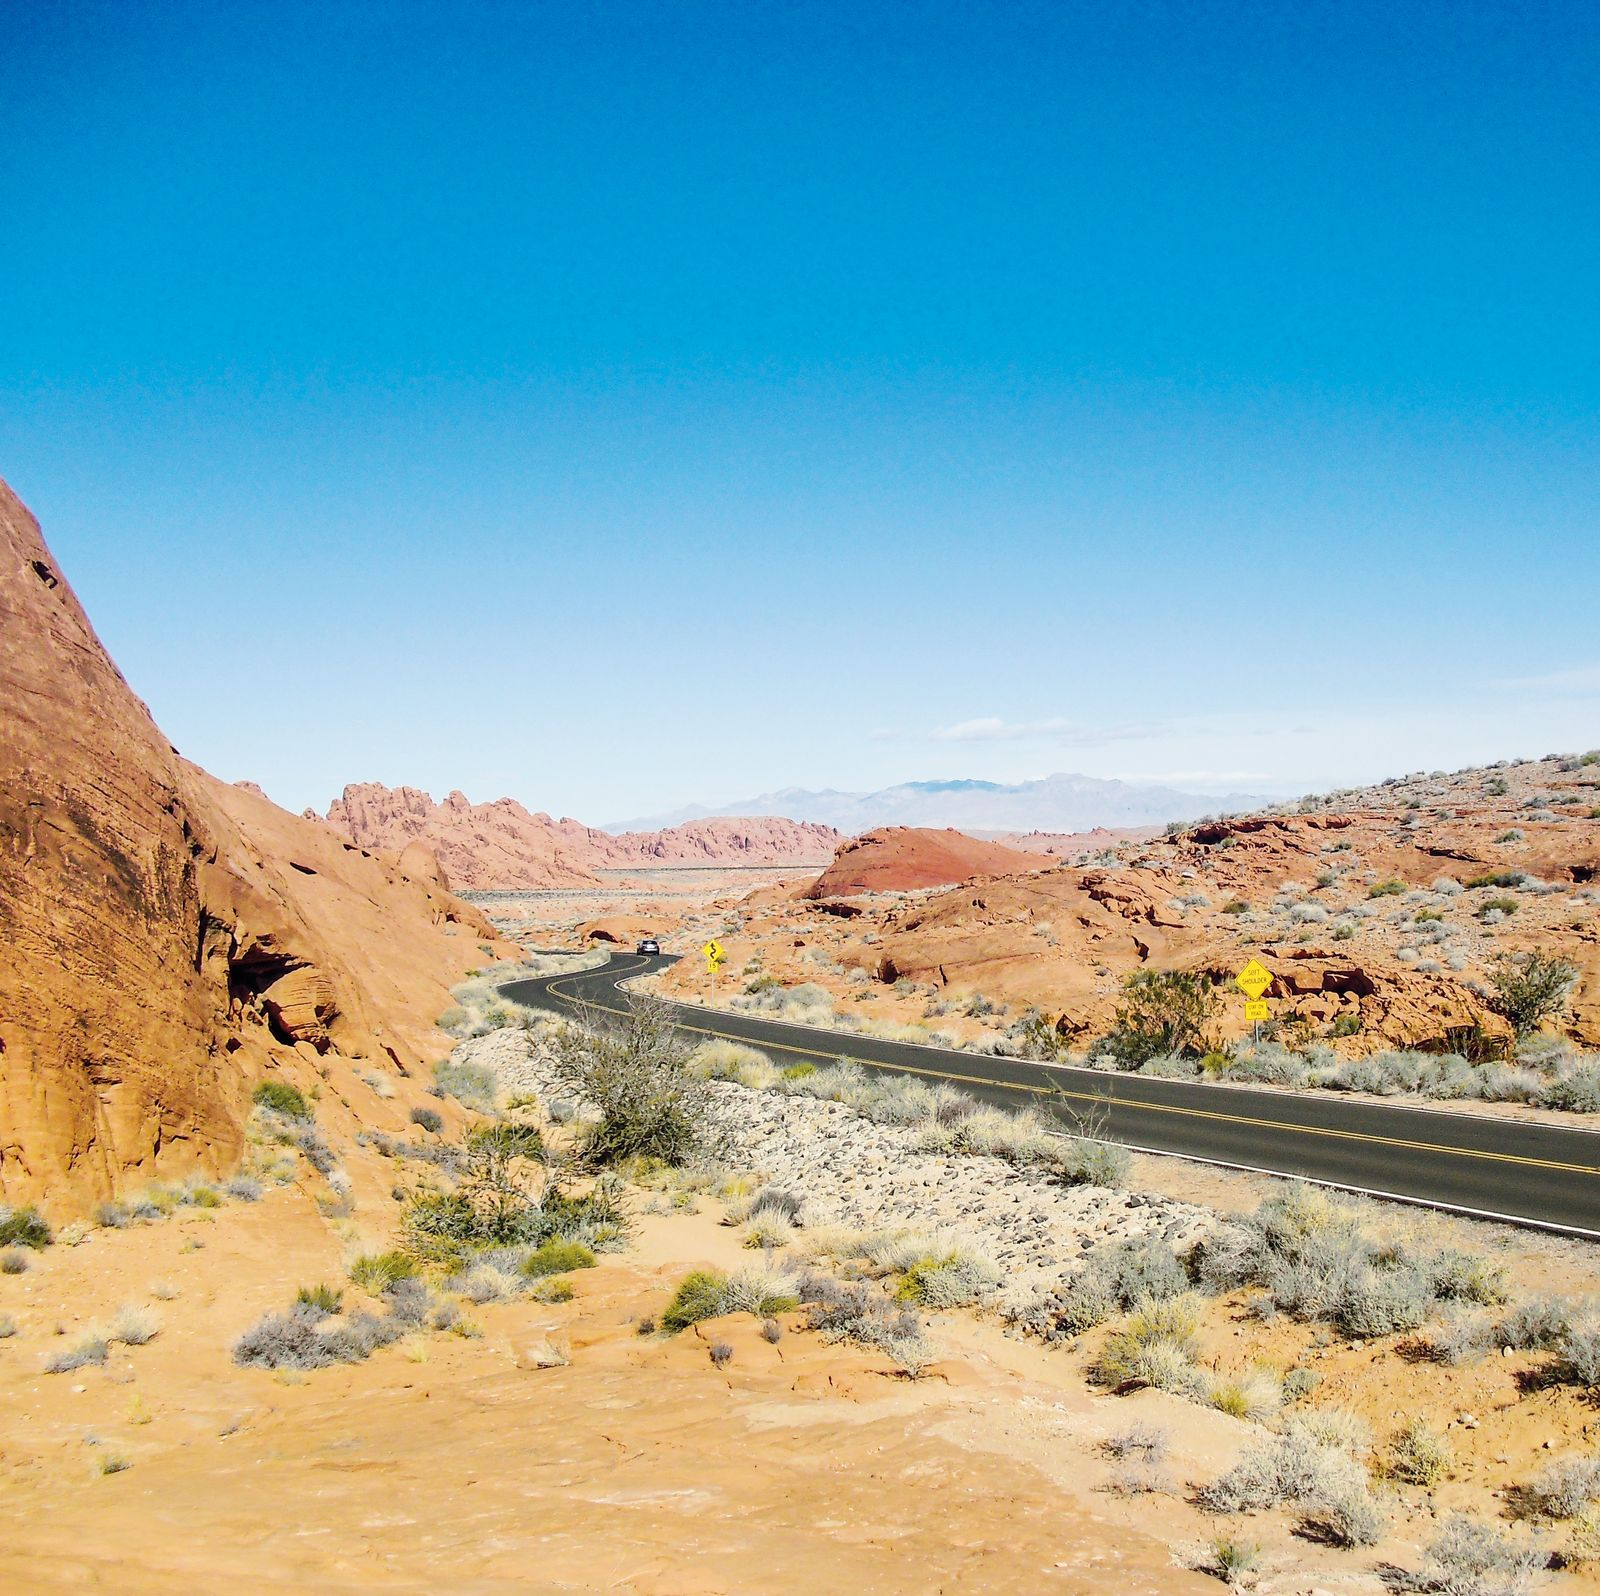 Strasse durch das Valley of Fire